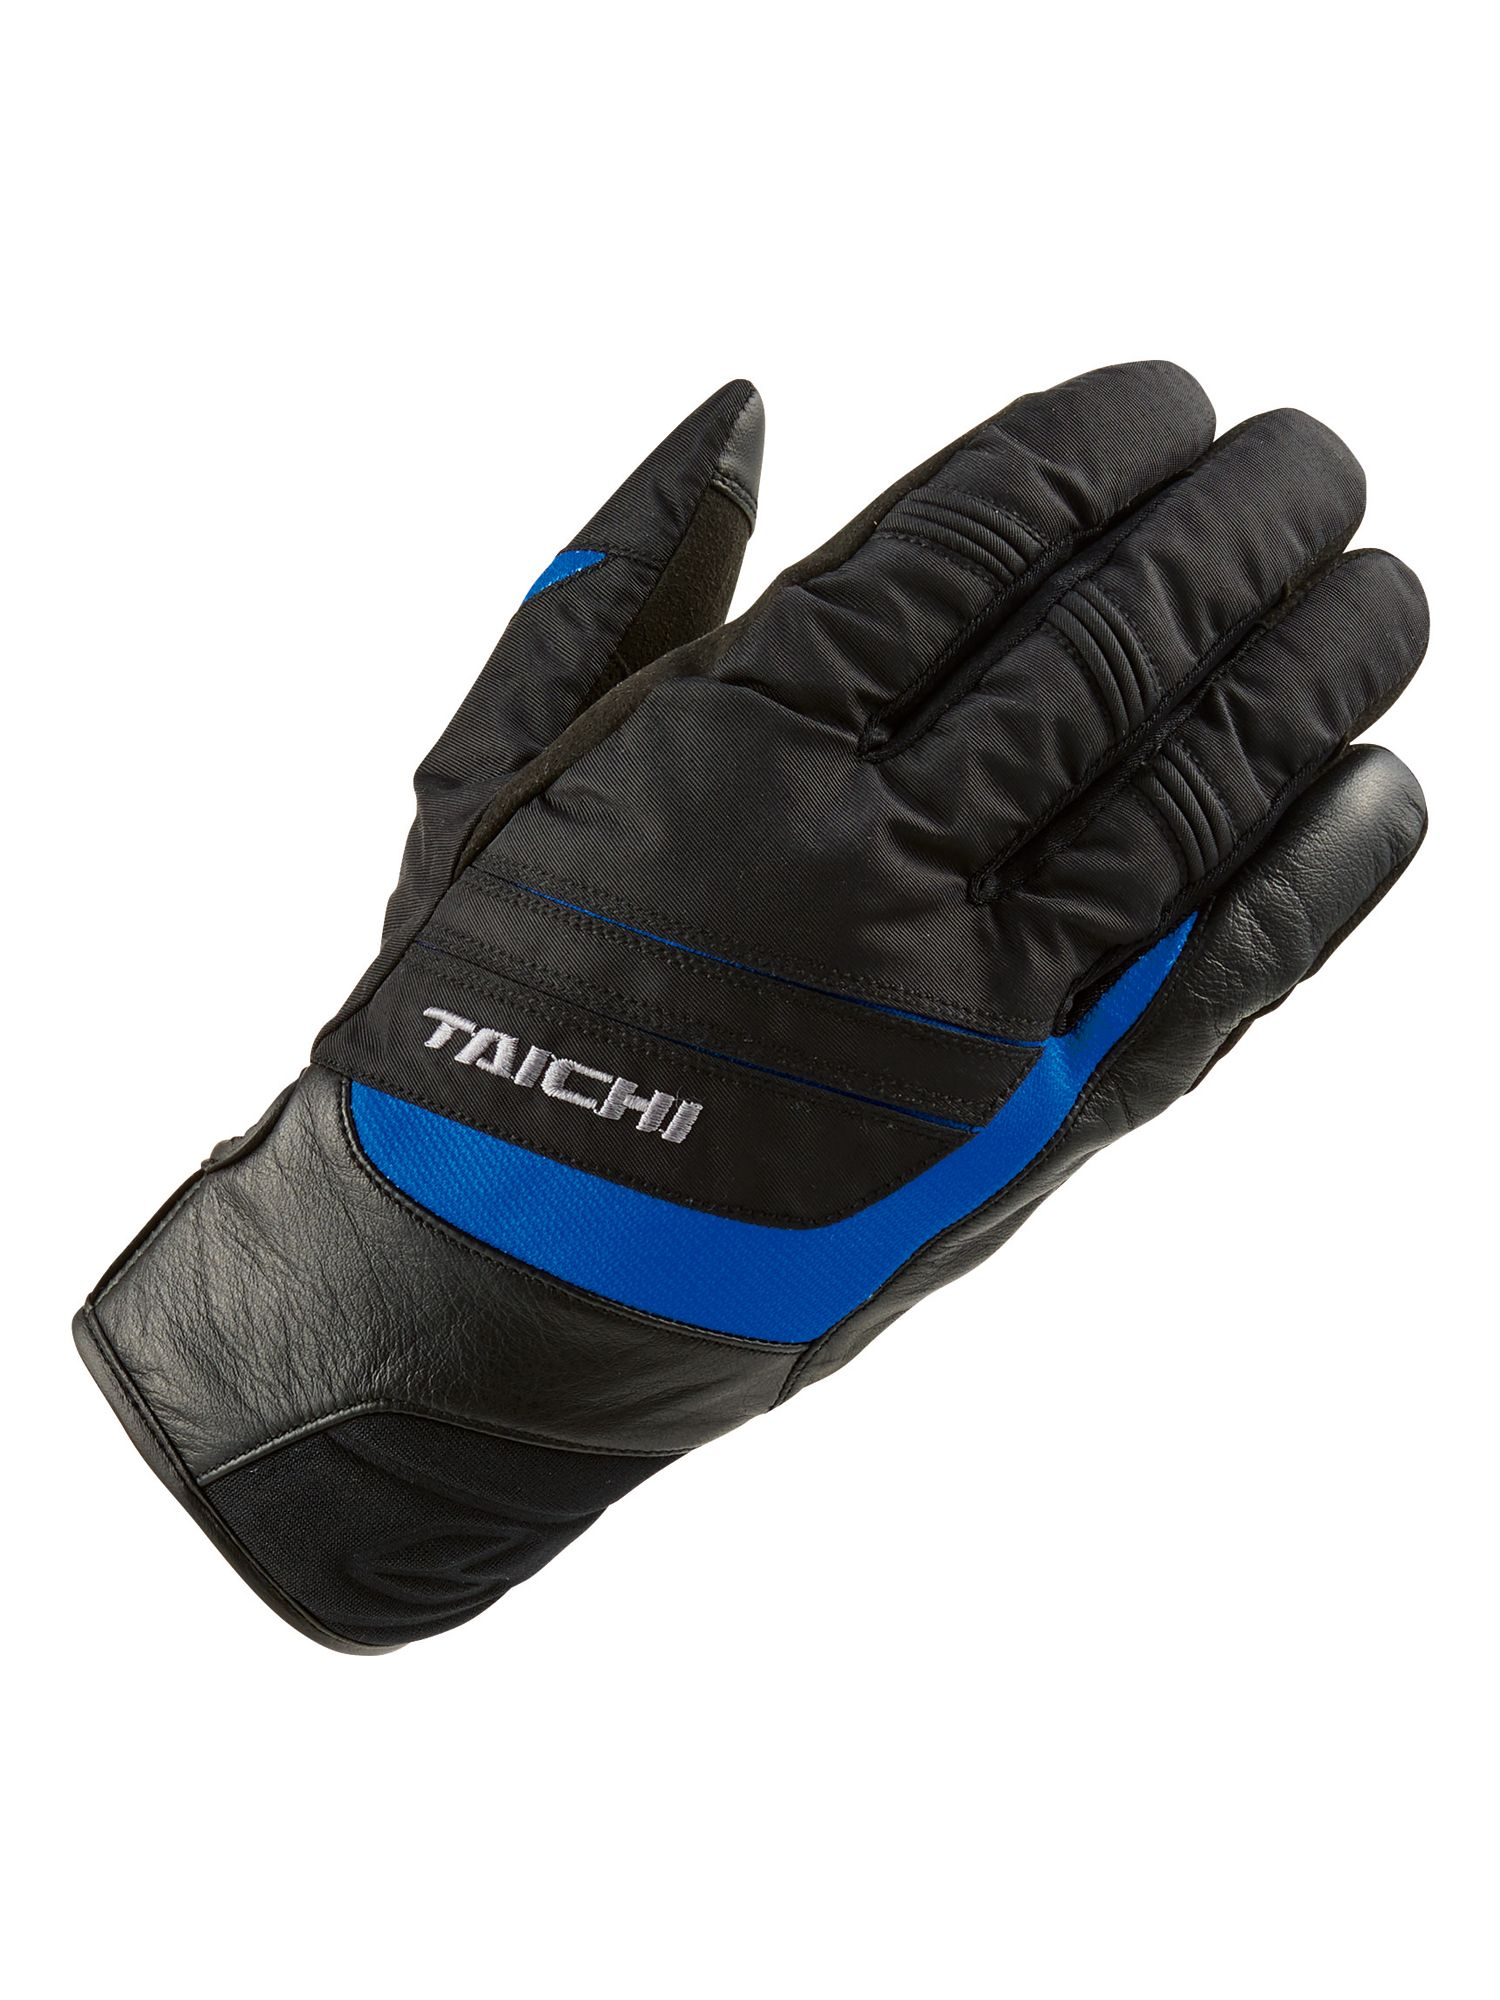 RST611 | LIBERTY WINTER GLOVE[2colors]